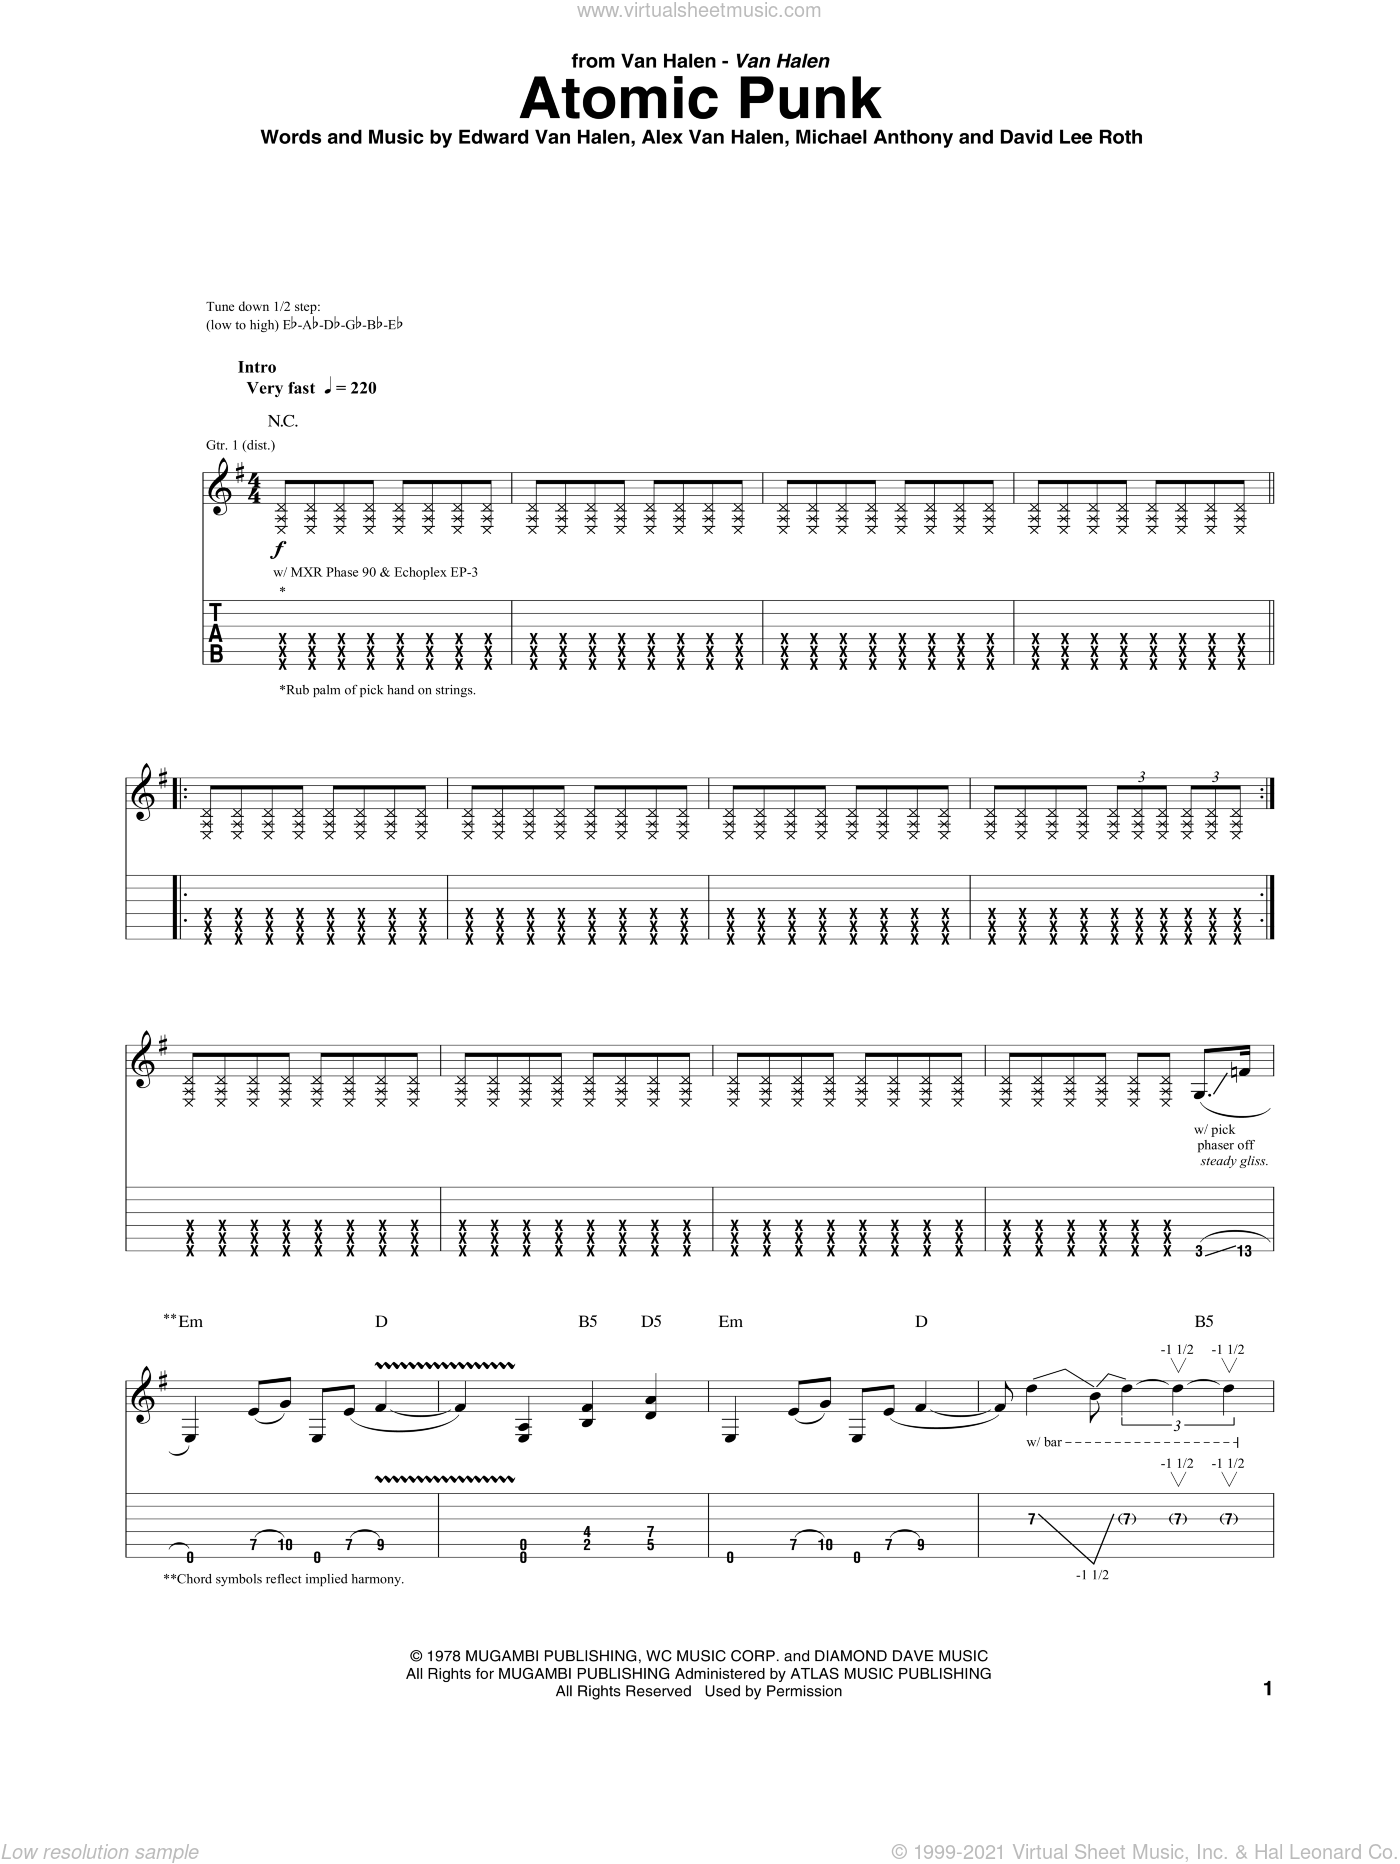 Atomic Punk sheet music for guitar (tablature) by Edward Van Halen, Alex Van Halen, David Lee Roth and Michael Anthony. Score Image Preview.